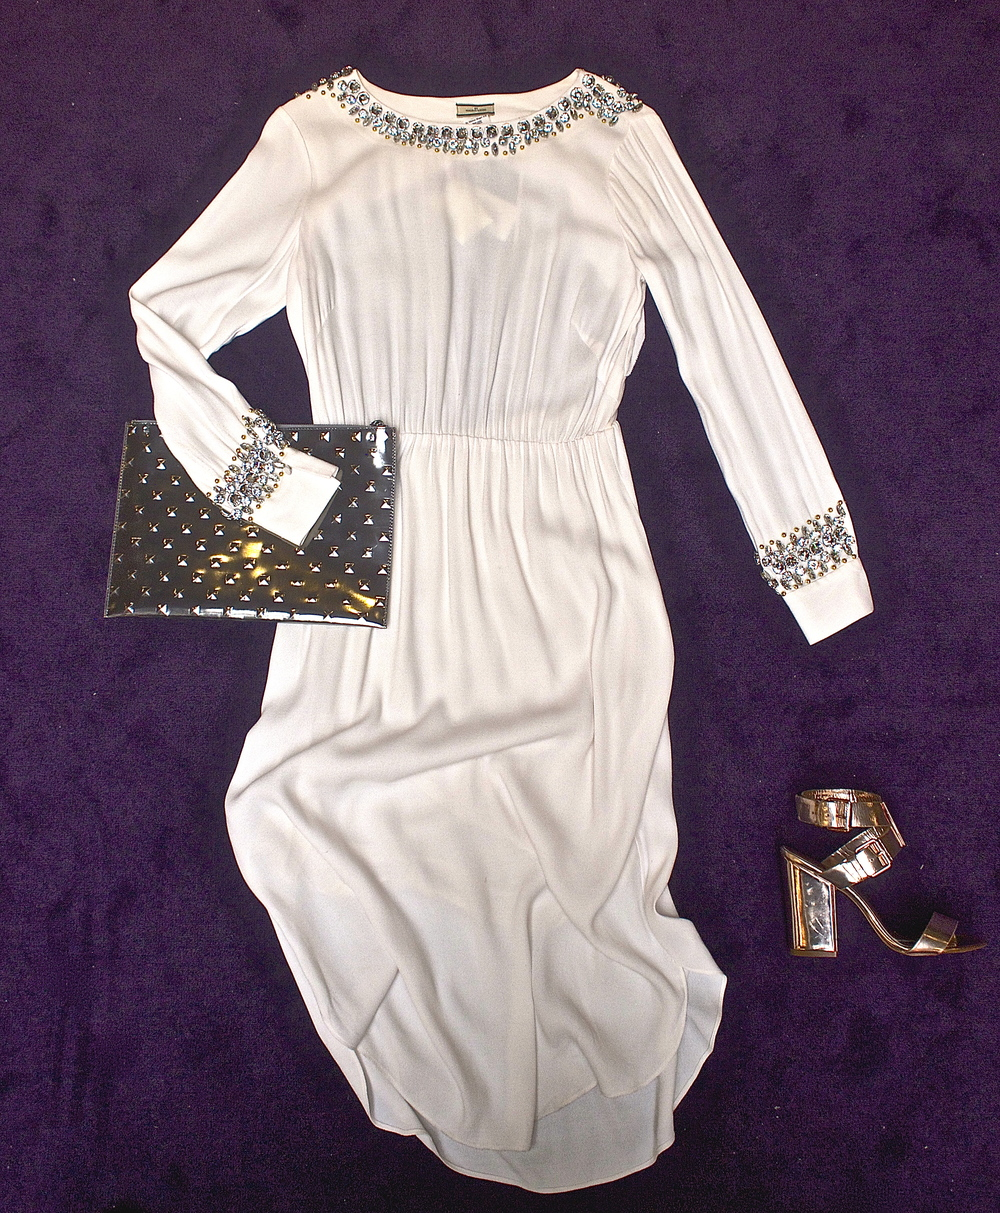 Malene Birger - Livisia Dress $895, Ela - Editors's Studded Pouch Silver $218, Ted Baker - Lissom Shoe Rose Gold $298